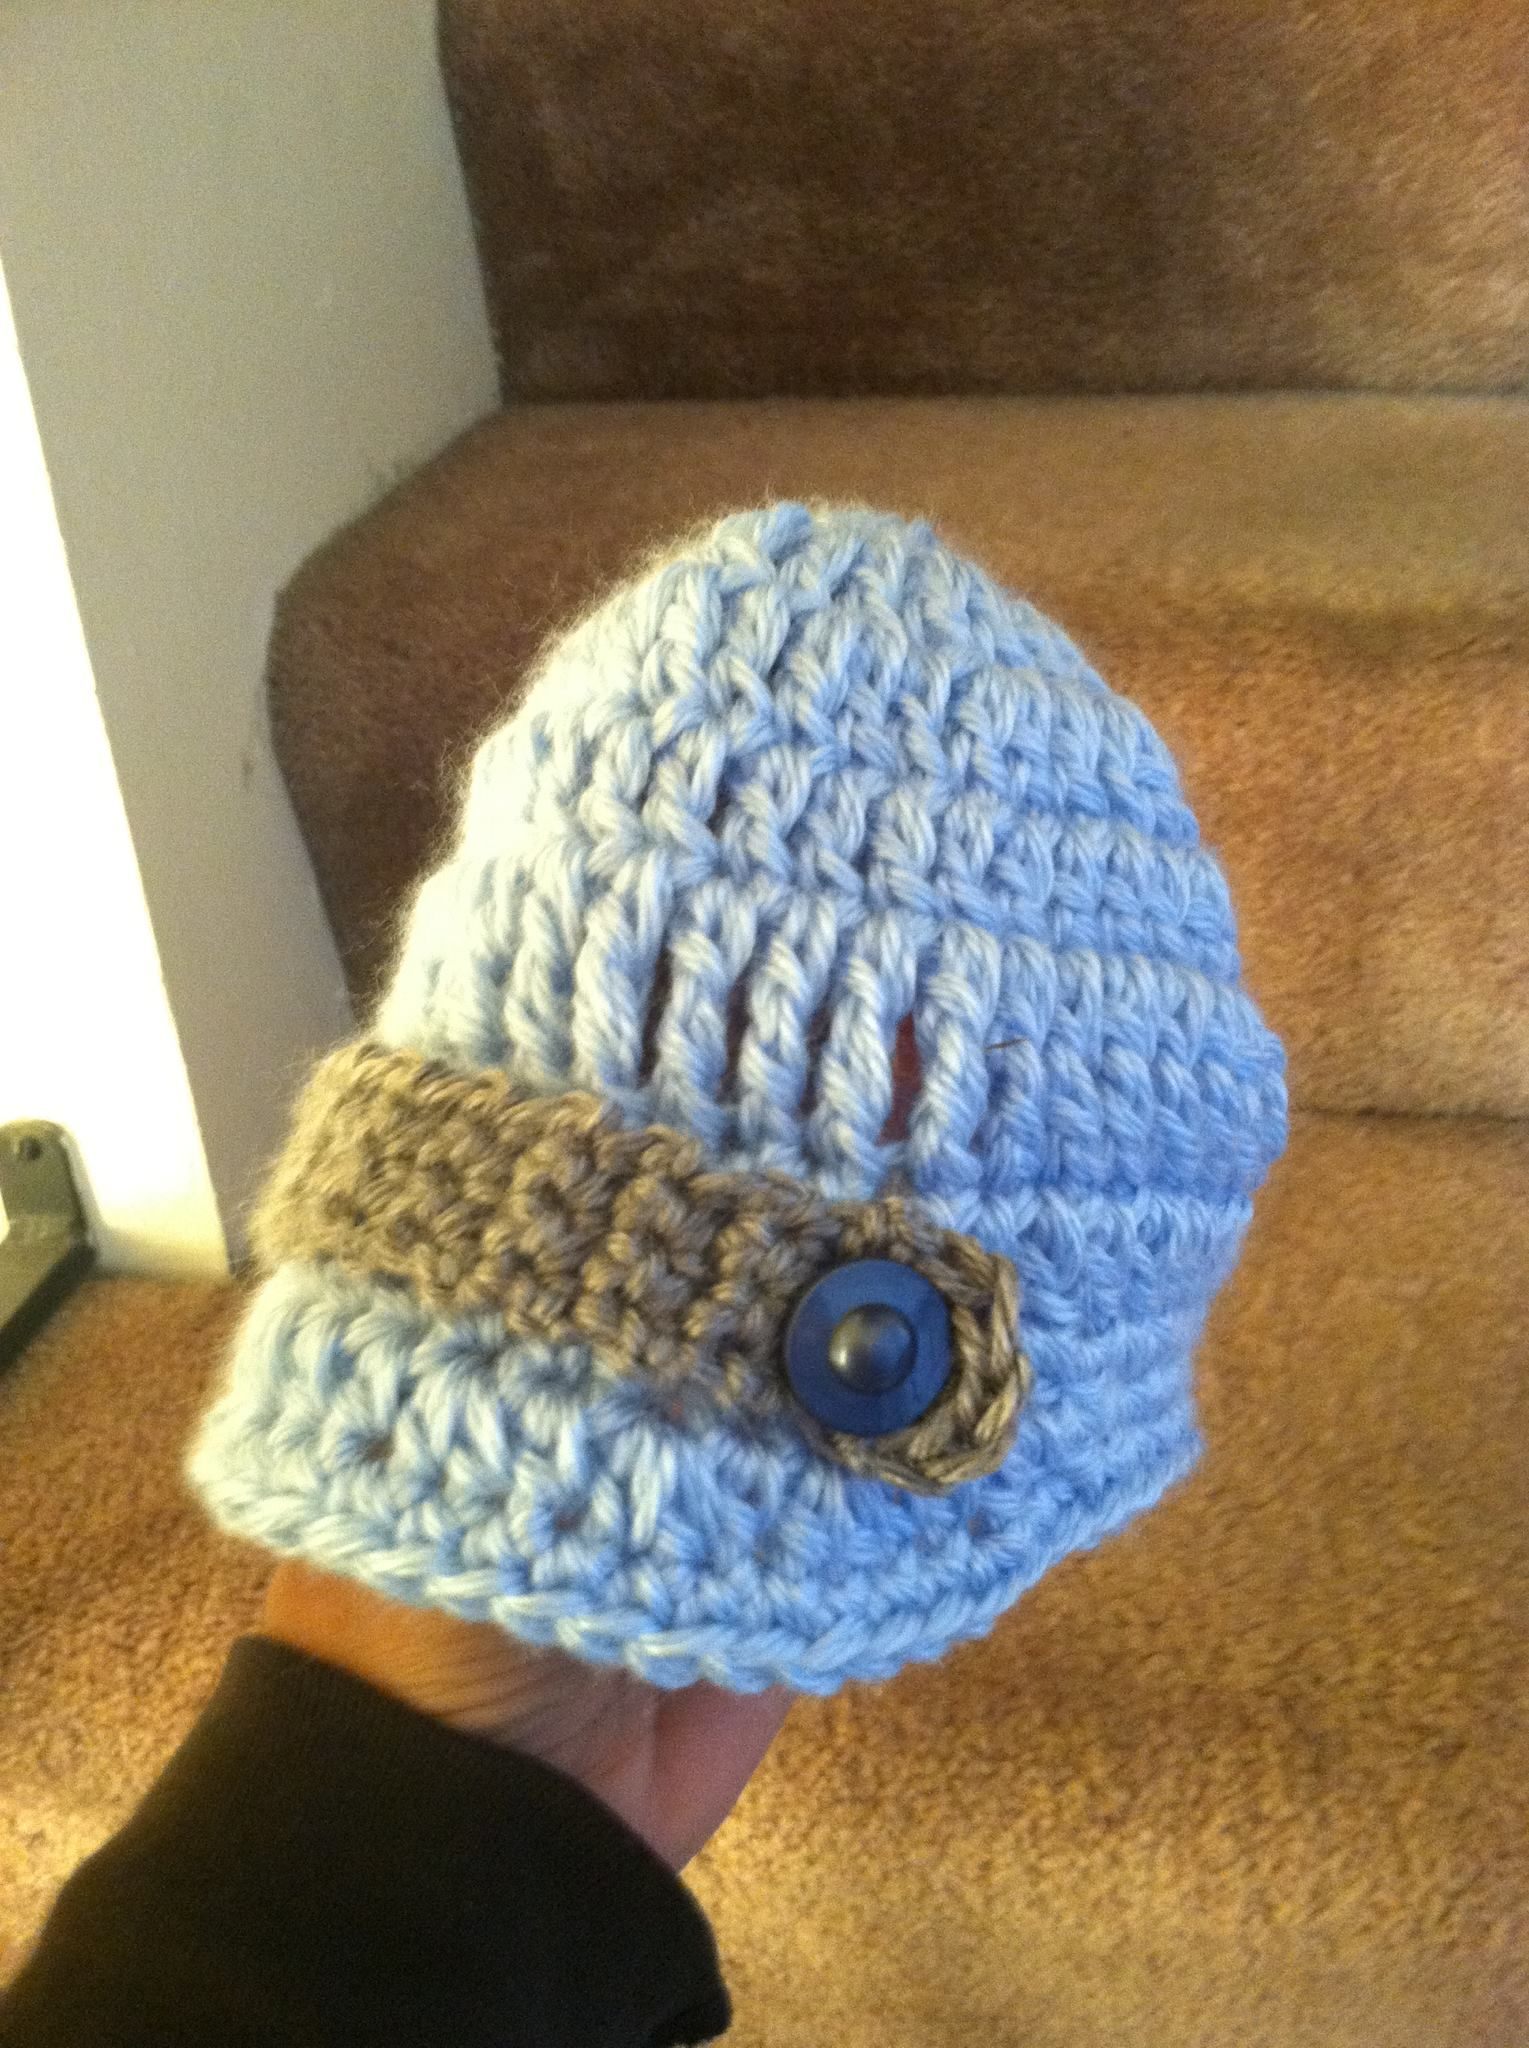 Very cute baby hat. It's blue with a grey strap and blue button on it. Very soft and warm and even has a cute little brim!